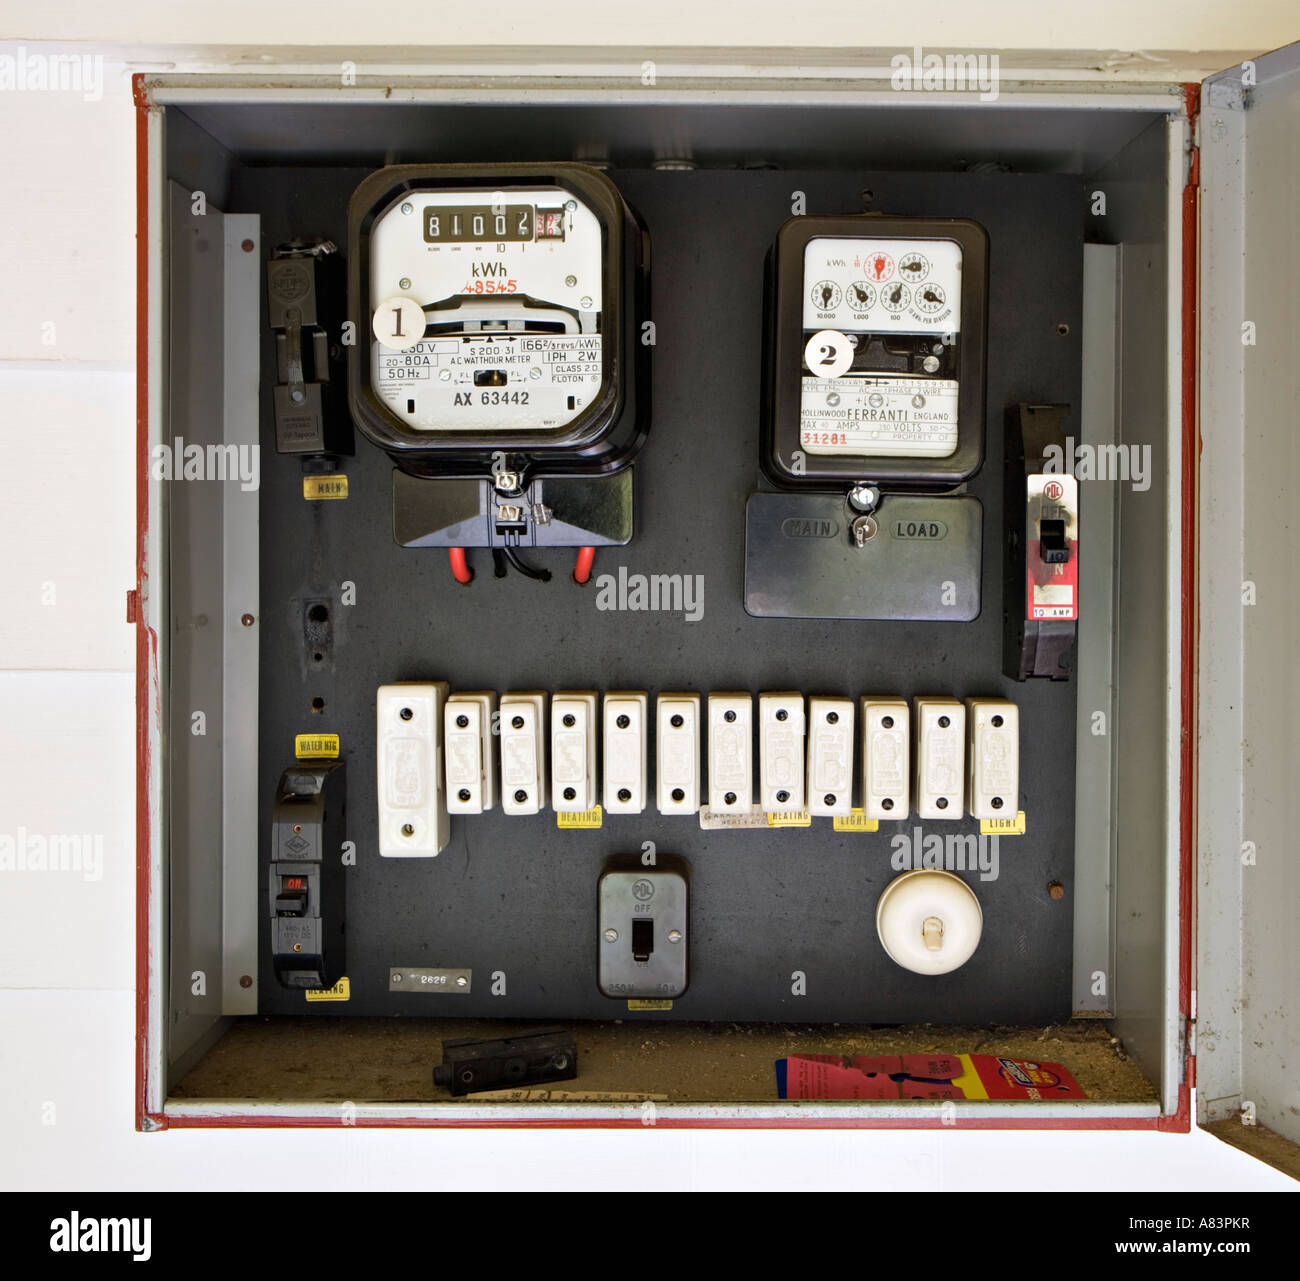 house power meter box wiring auto electrical wiring diagram rh mit edu uk bitoku me Electric Meter Installation Diagram Electric Meter Installation Diagram